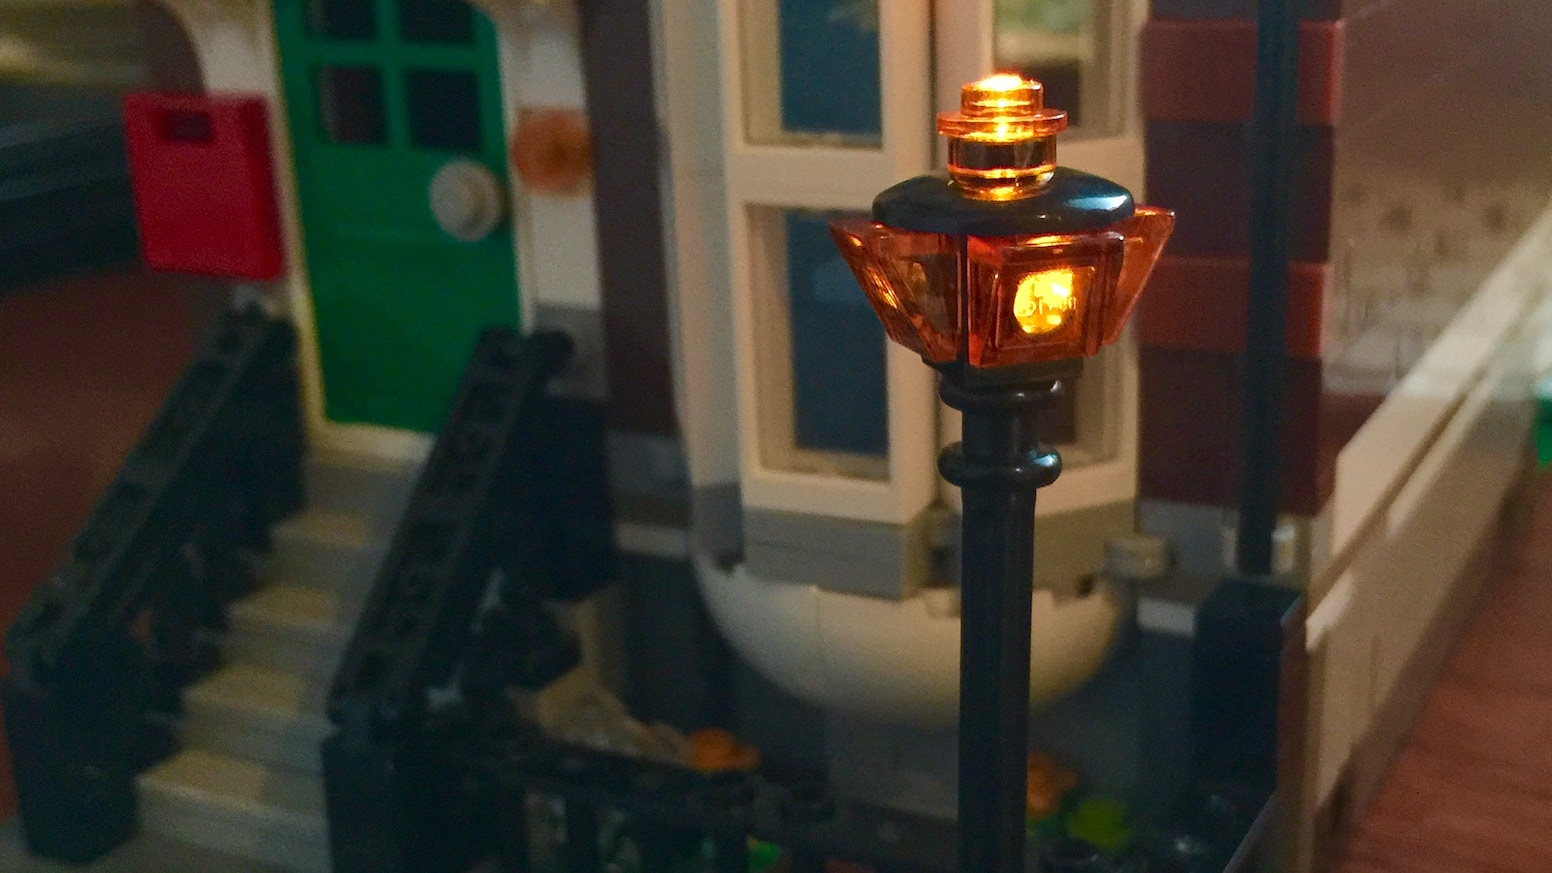 A Lego Street light for Creator building and town.